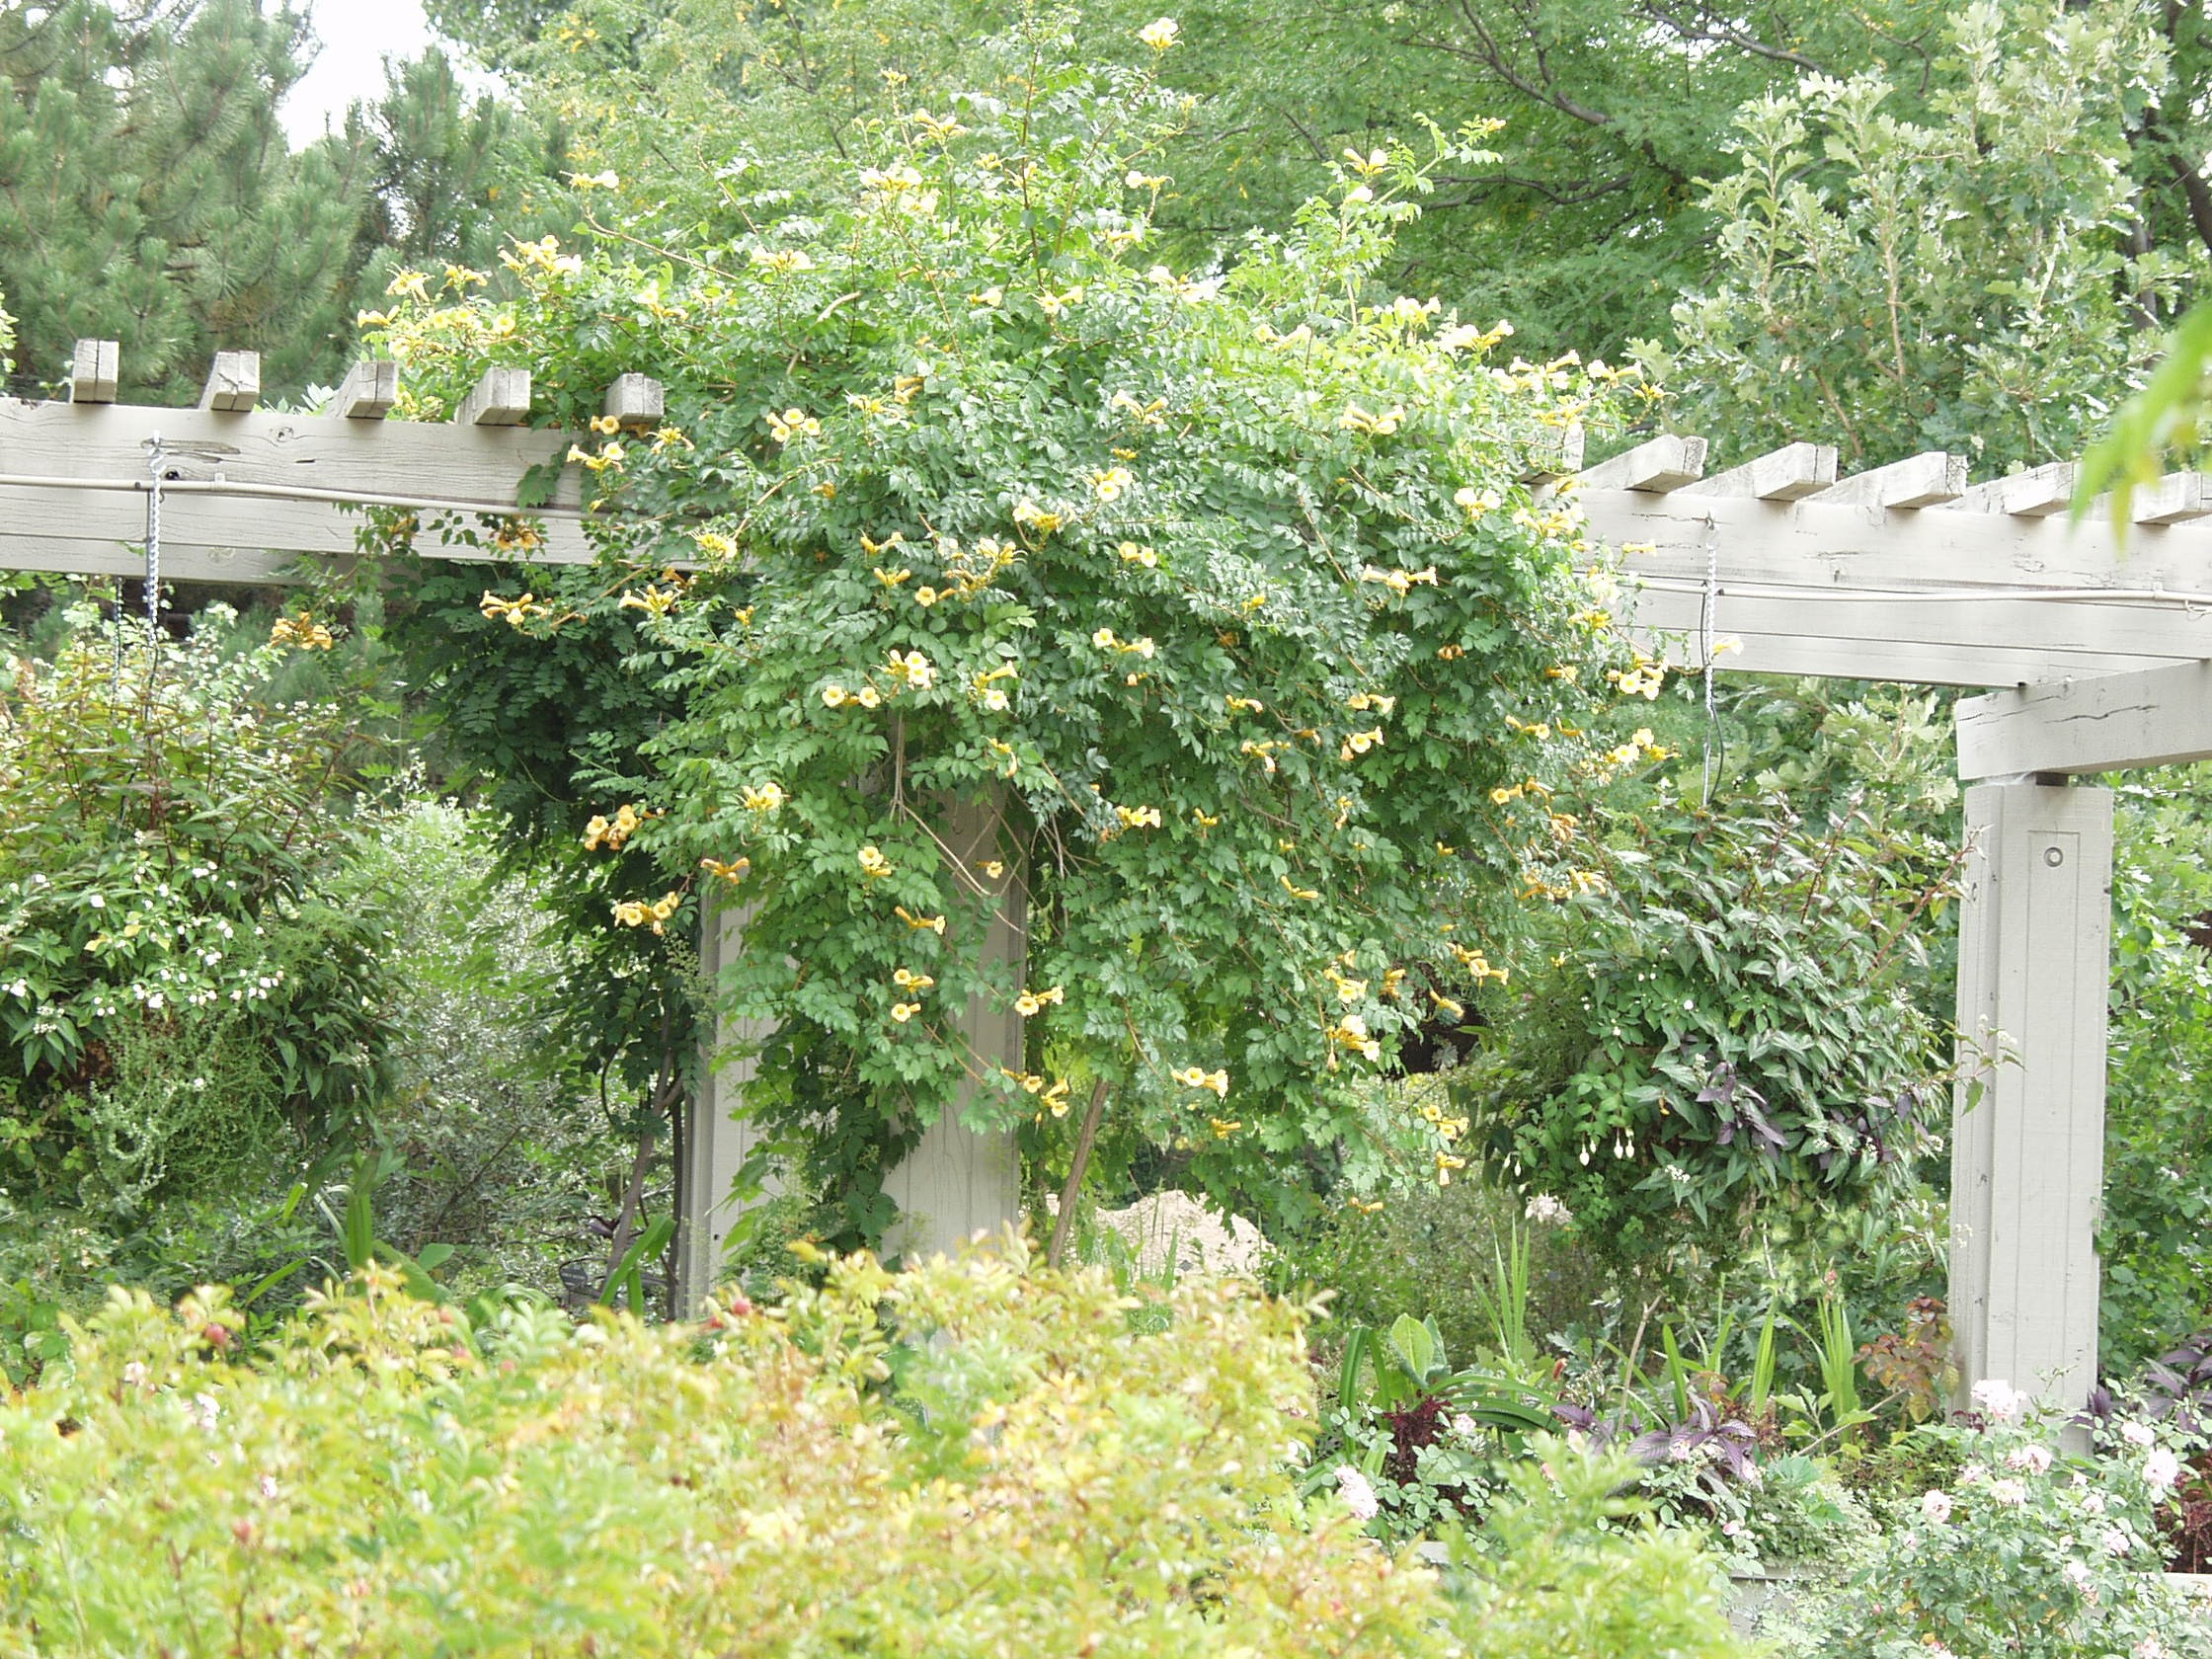 Trumpet vine yellow thetreefarm photo arbortanics inc yellow trumpet vinephoto arbortanics inc mightylinksfo